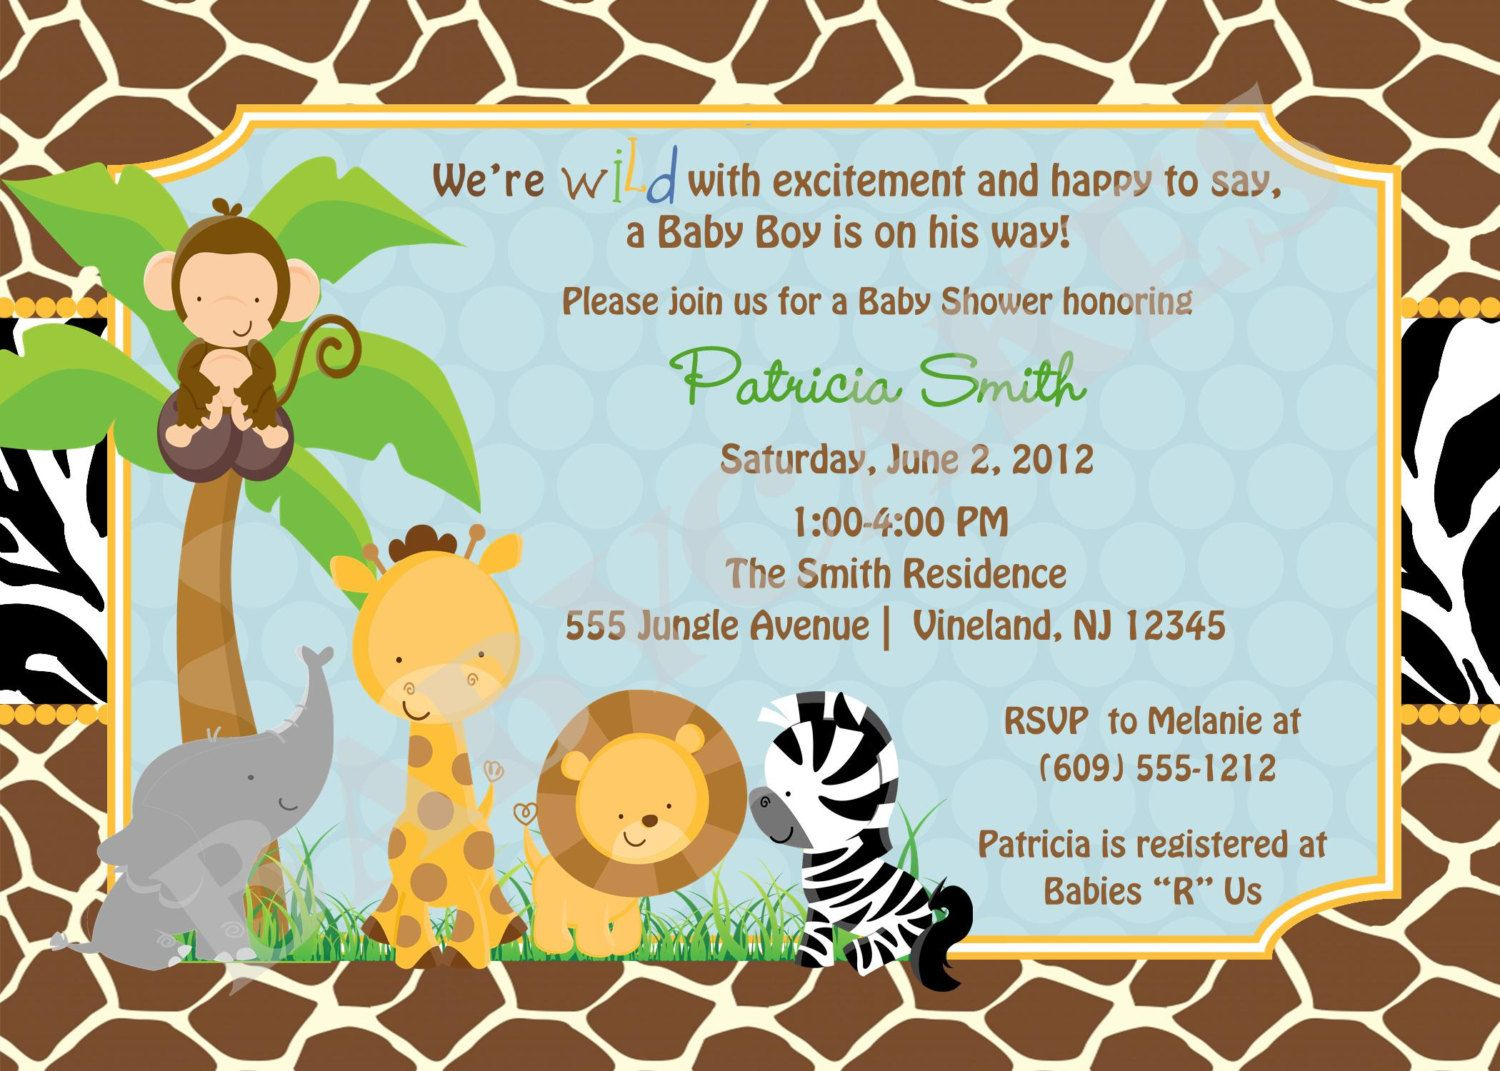 Birthday Invita with nice invitations ideas